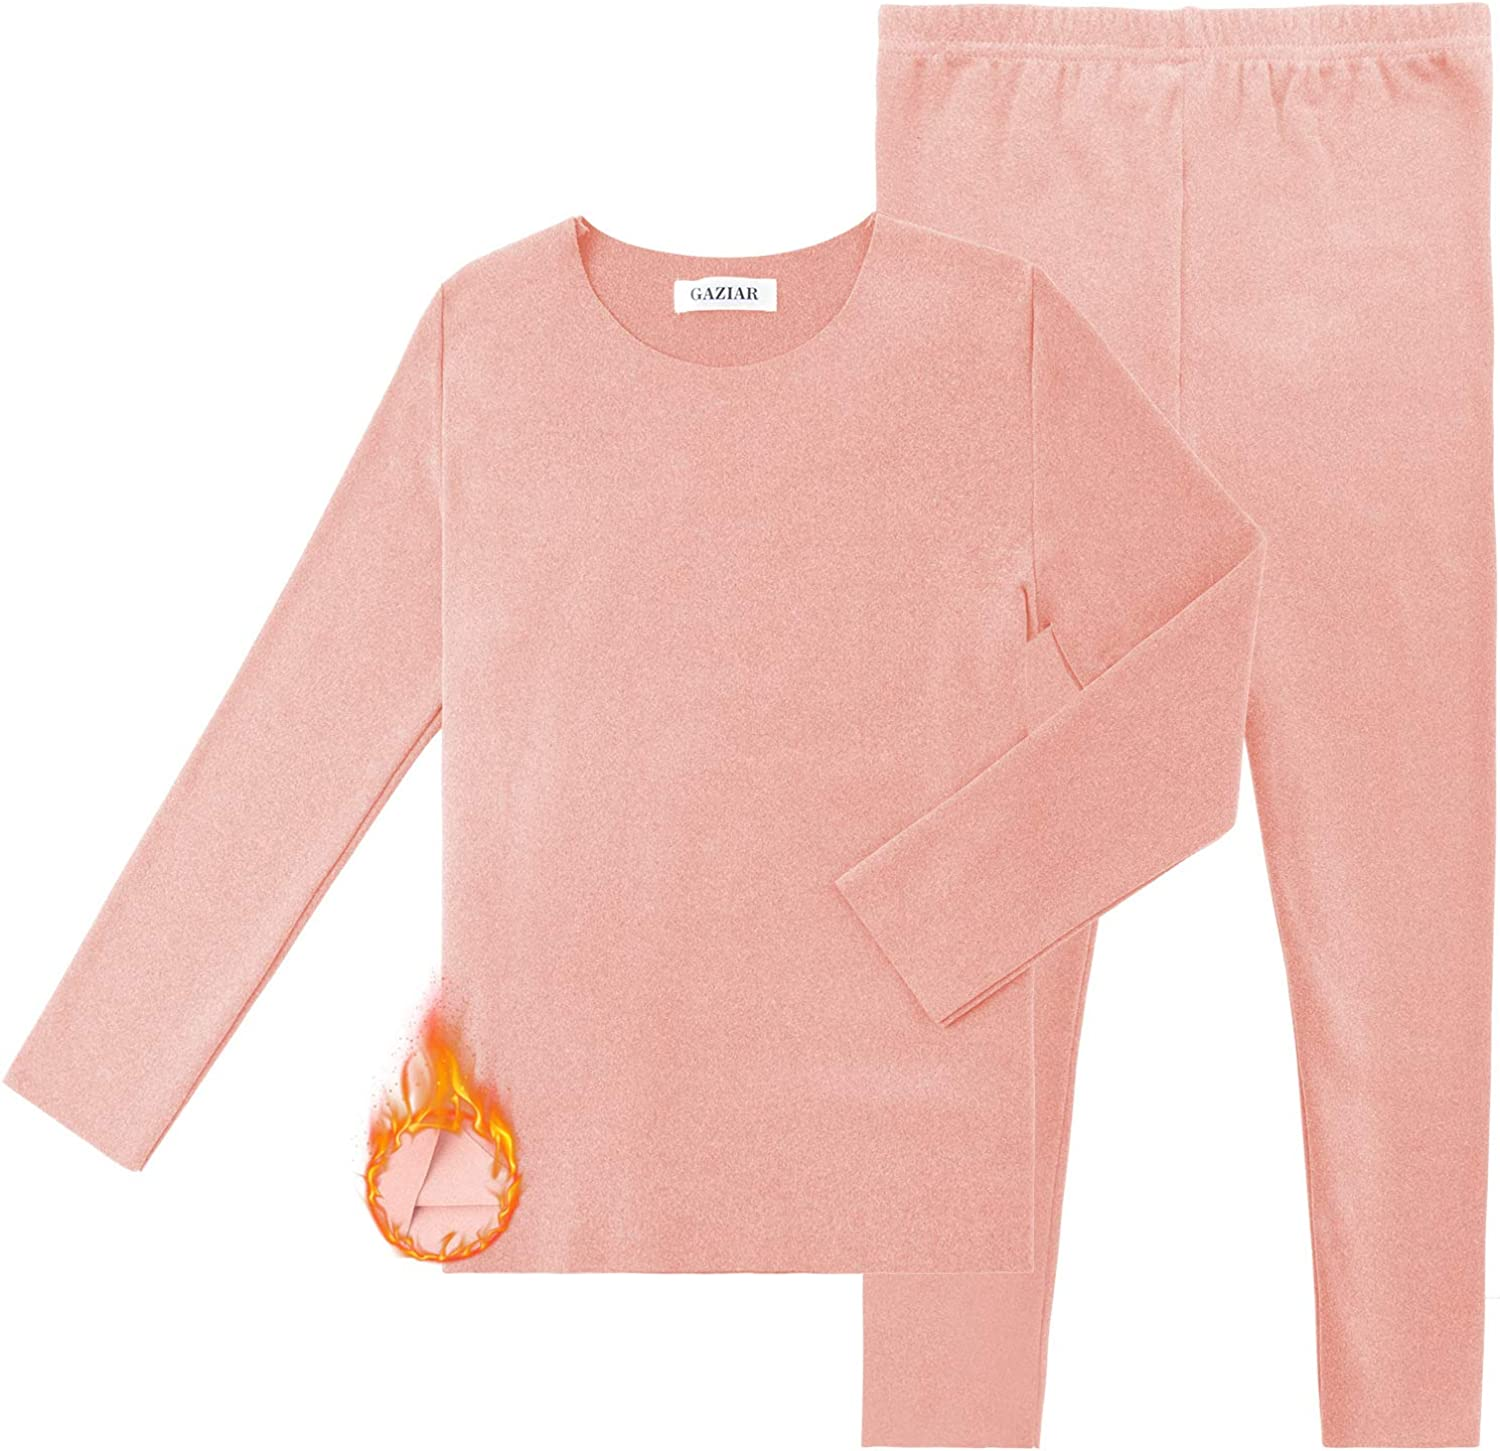 GAZIAR Thermal Underwear for Girls Kids Thermal Long Johns Pajamas Set with Ultra Soft Fleece Lined 2PCS 4-14Y